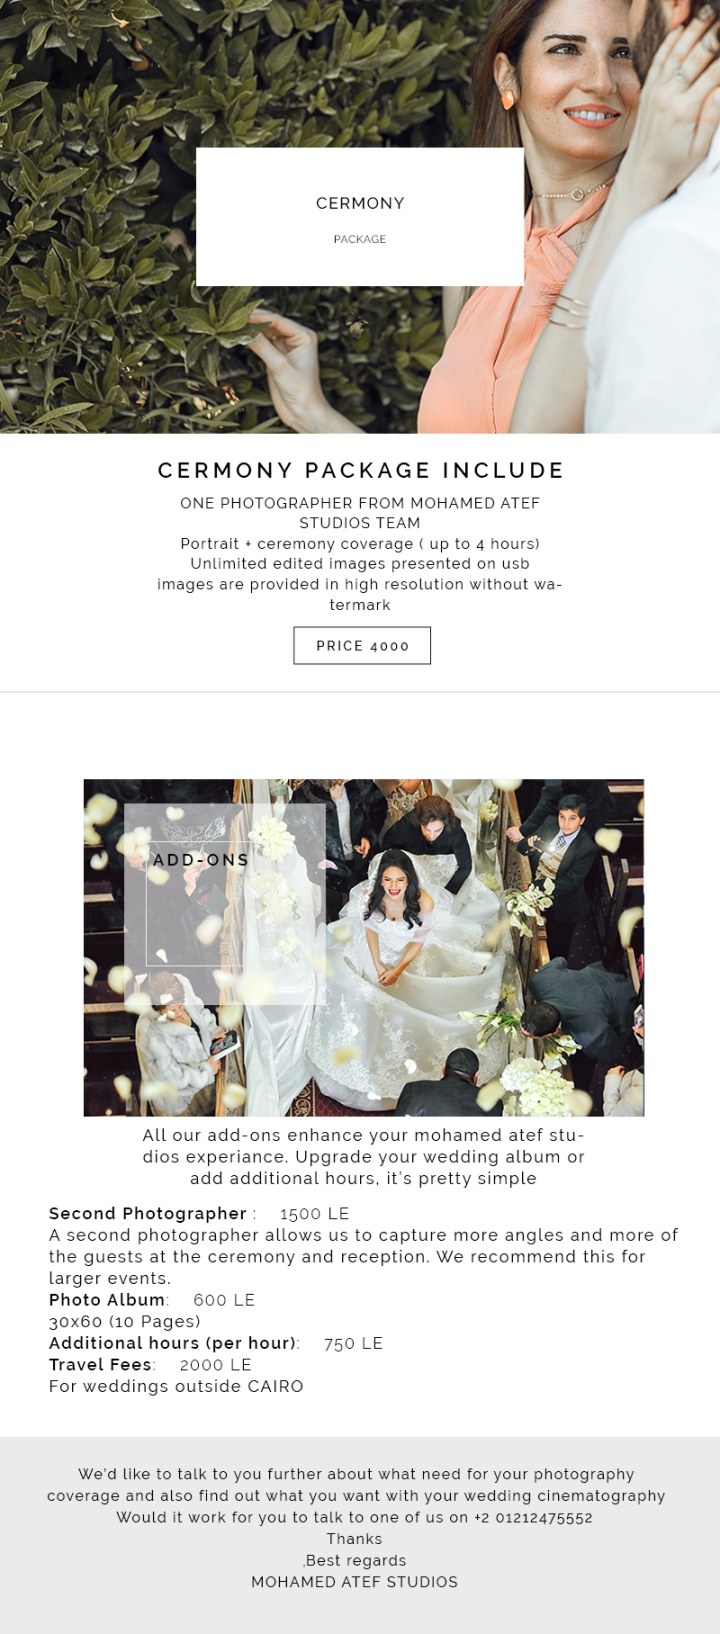 CERMONY PACKAGE